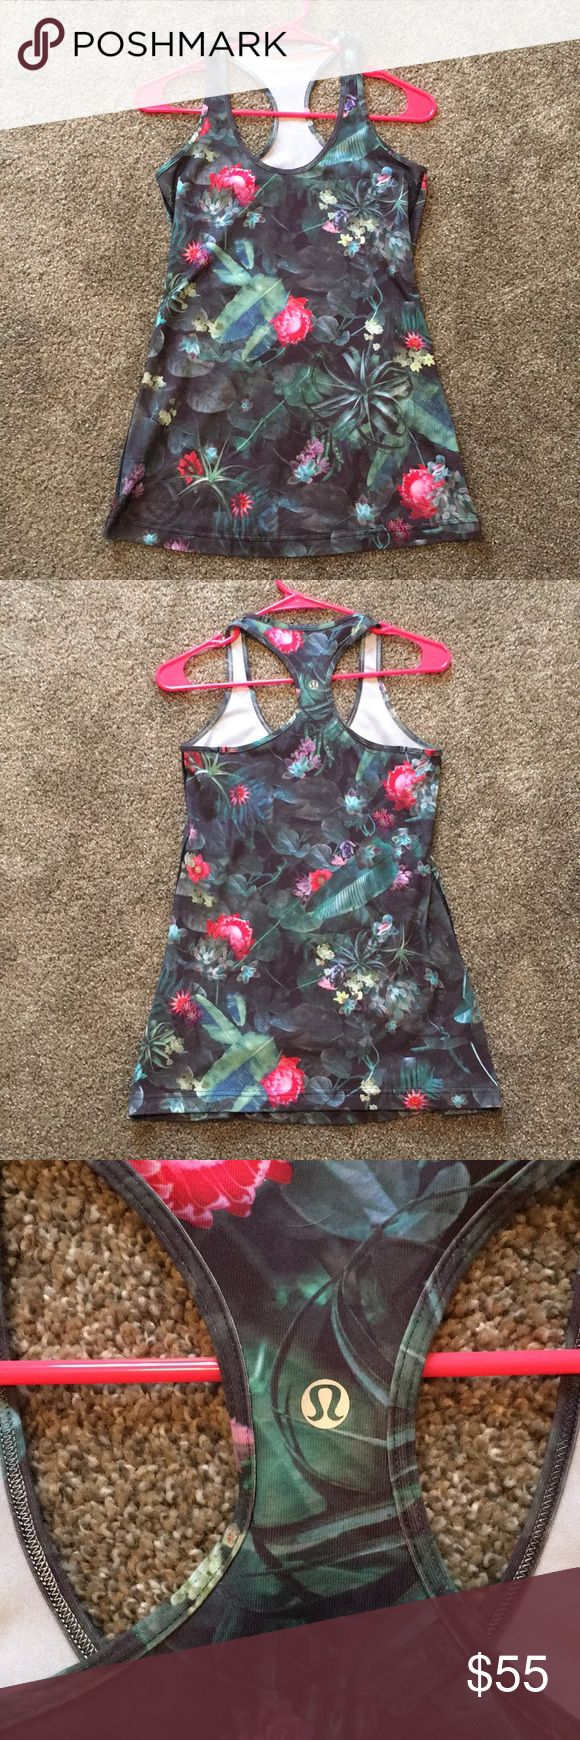 Lululemon Curious Jungle cool racerback size 8 Lululemon Curious Jungle cool racerback size 8. This tank is in perfect condition, no flaws. Only worn once on my honeymoon . Rare print! No size dot or tag, but definitely a size 8. I do not trade ‍♀️ lululemon athletica Tops Tank Tops